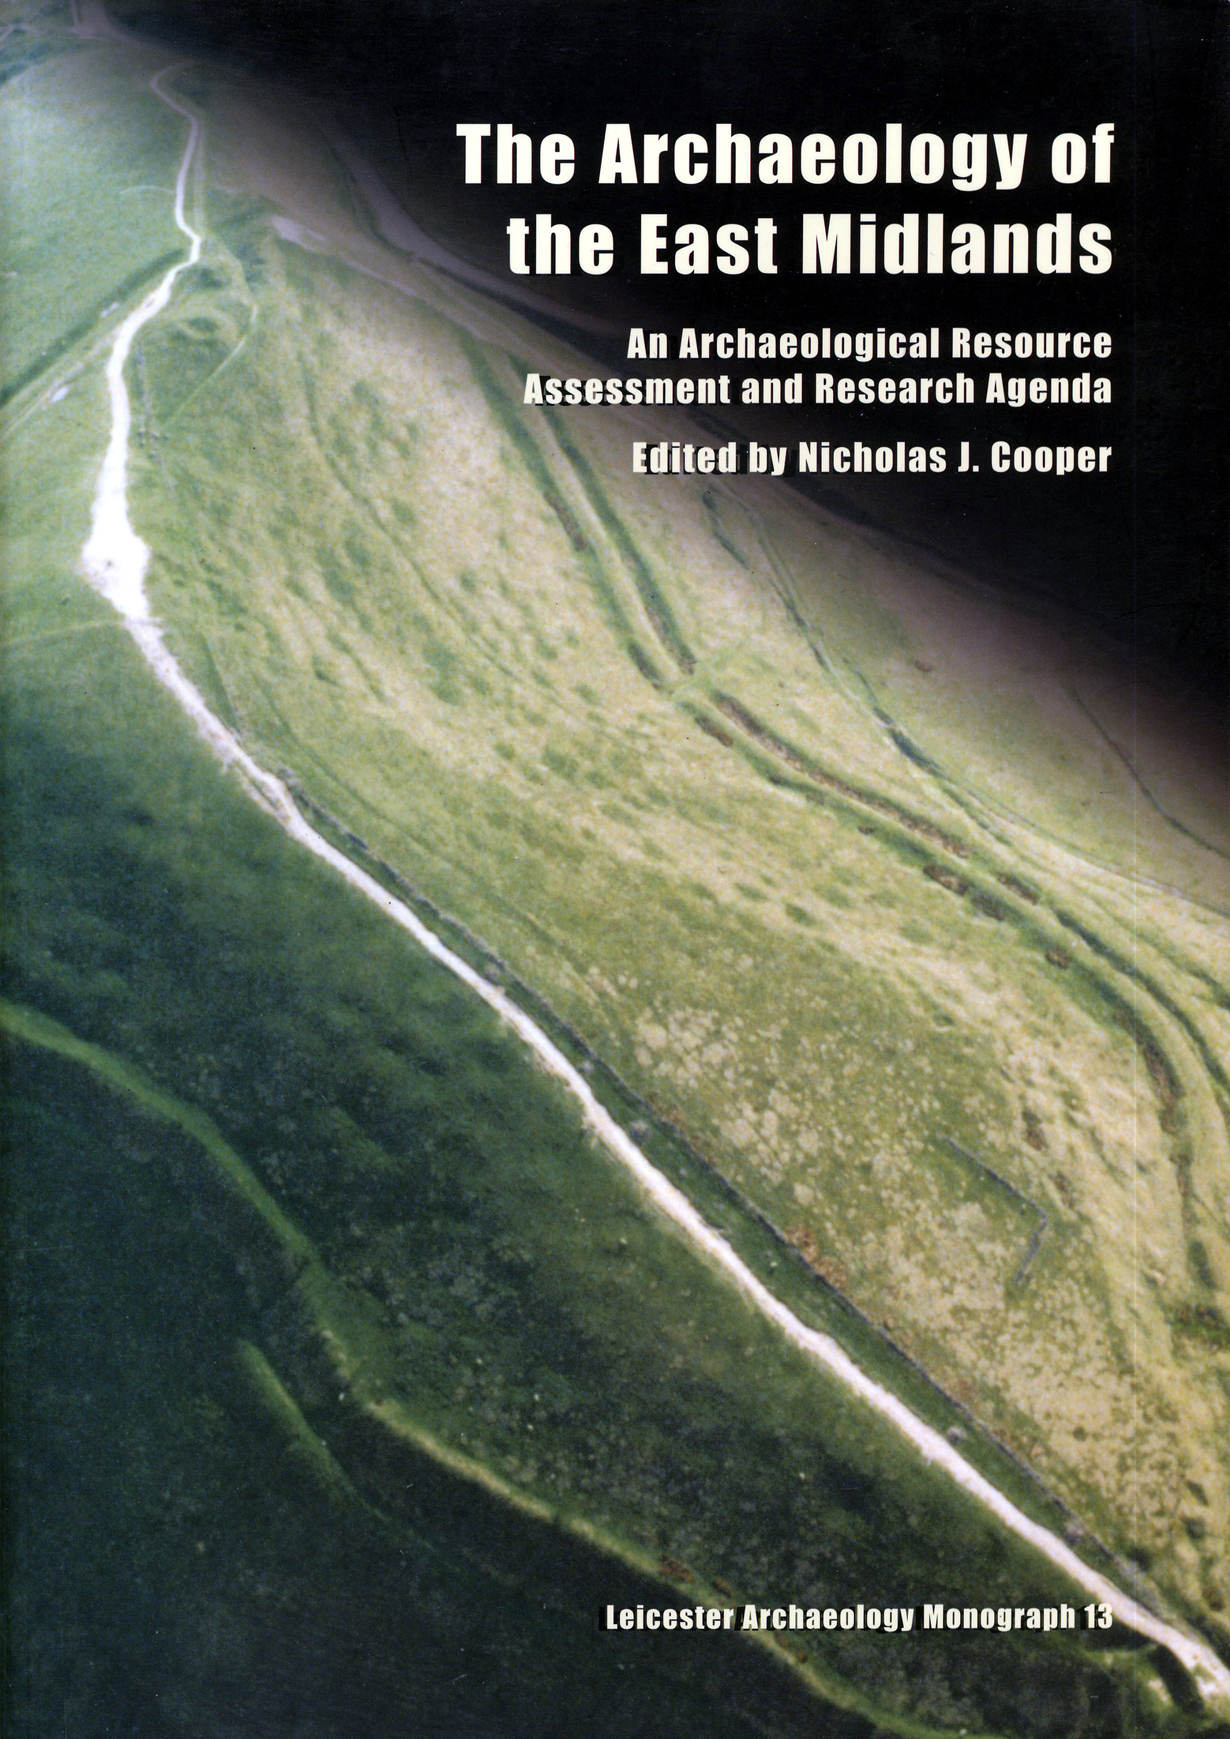 """An image of the front cover of """"The Archaeology of the East Midlands: An Archaeological Resource Assessment and Research Agenda"""", edited by Nicholas J Cooper"""